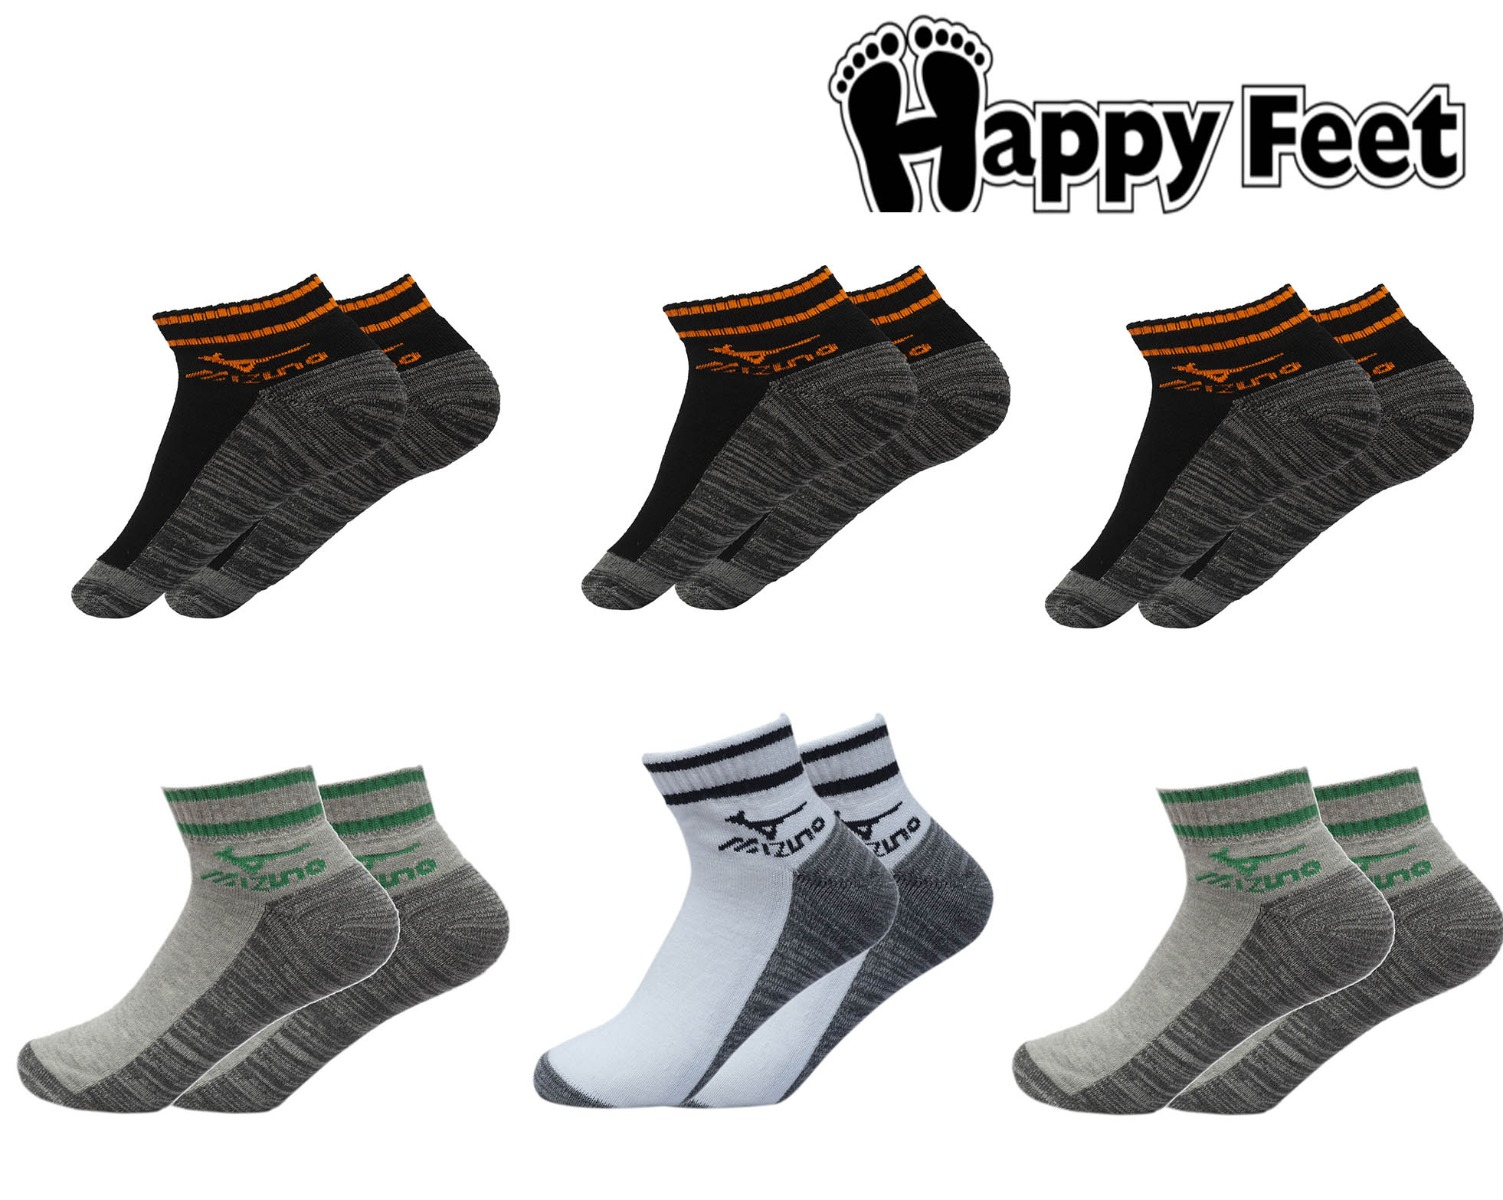 Happy Feet Pack of 6 Pairs of Roober Sports Cushion Ankle Socks (1056)